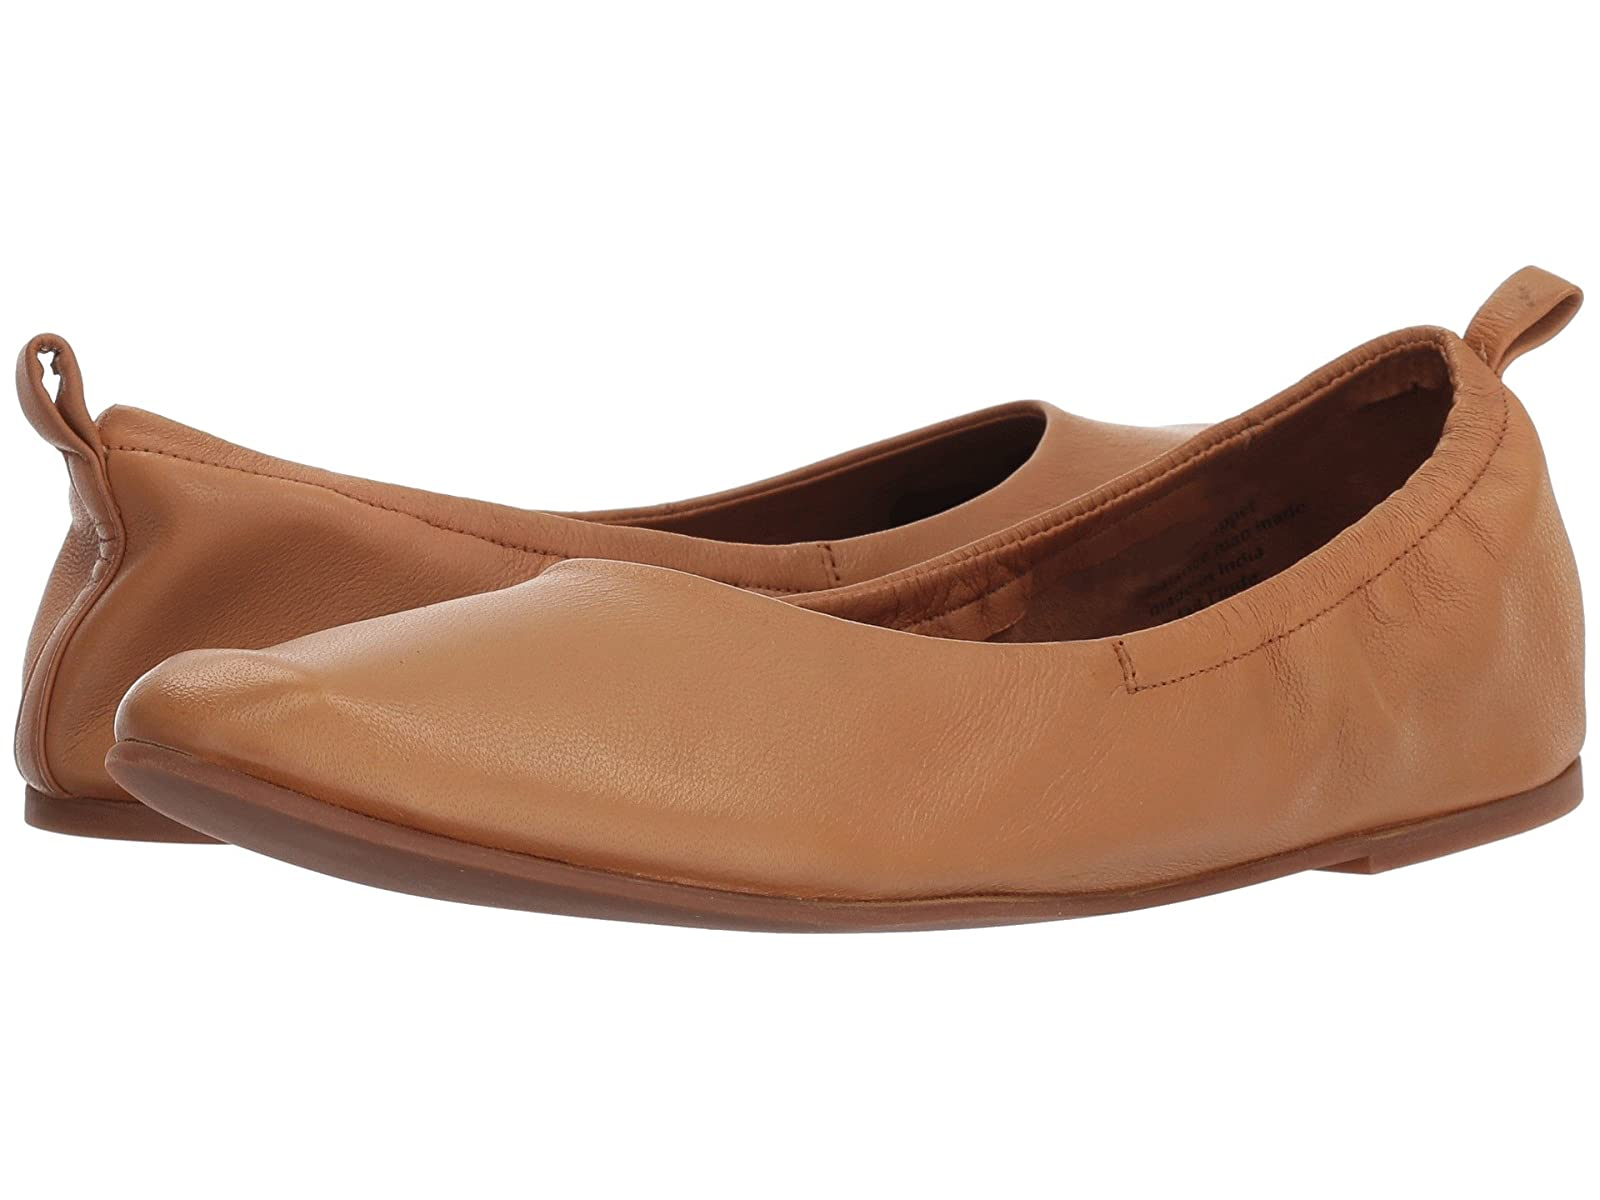 Seychelles Inner PeaceCheap and distinctive eye-catching shoes